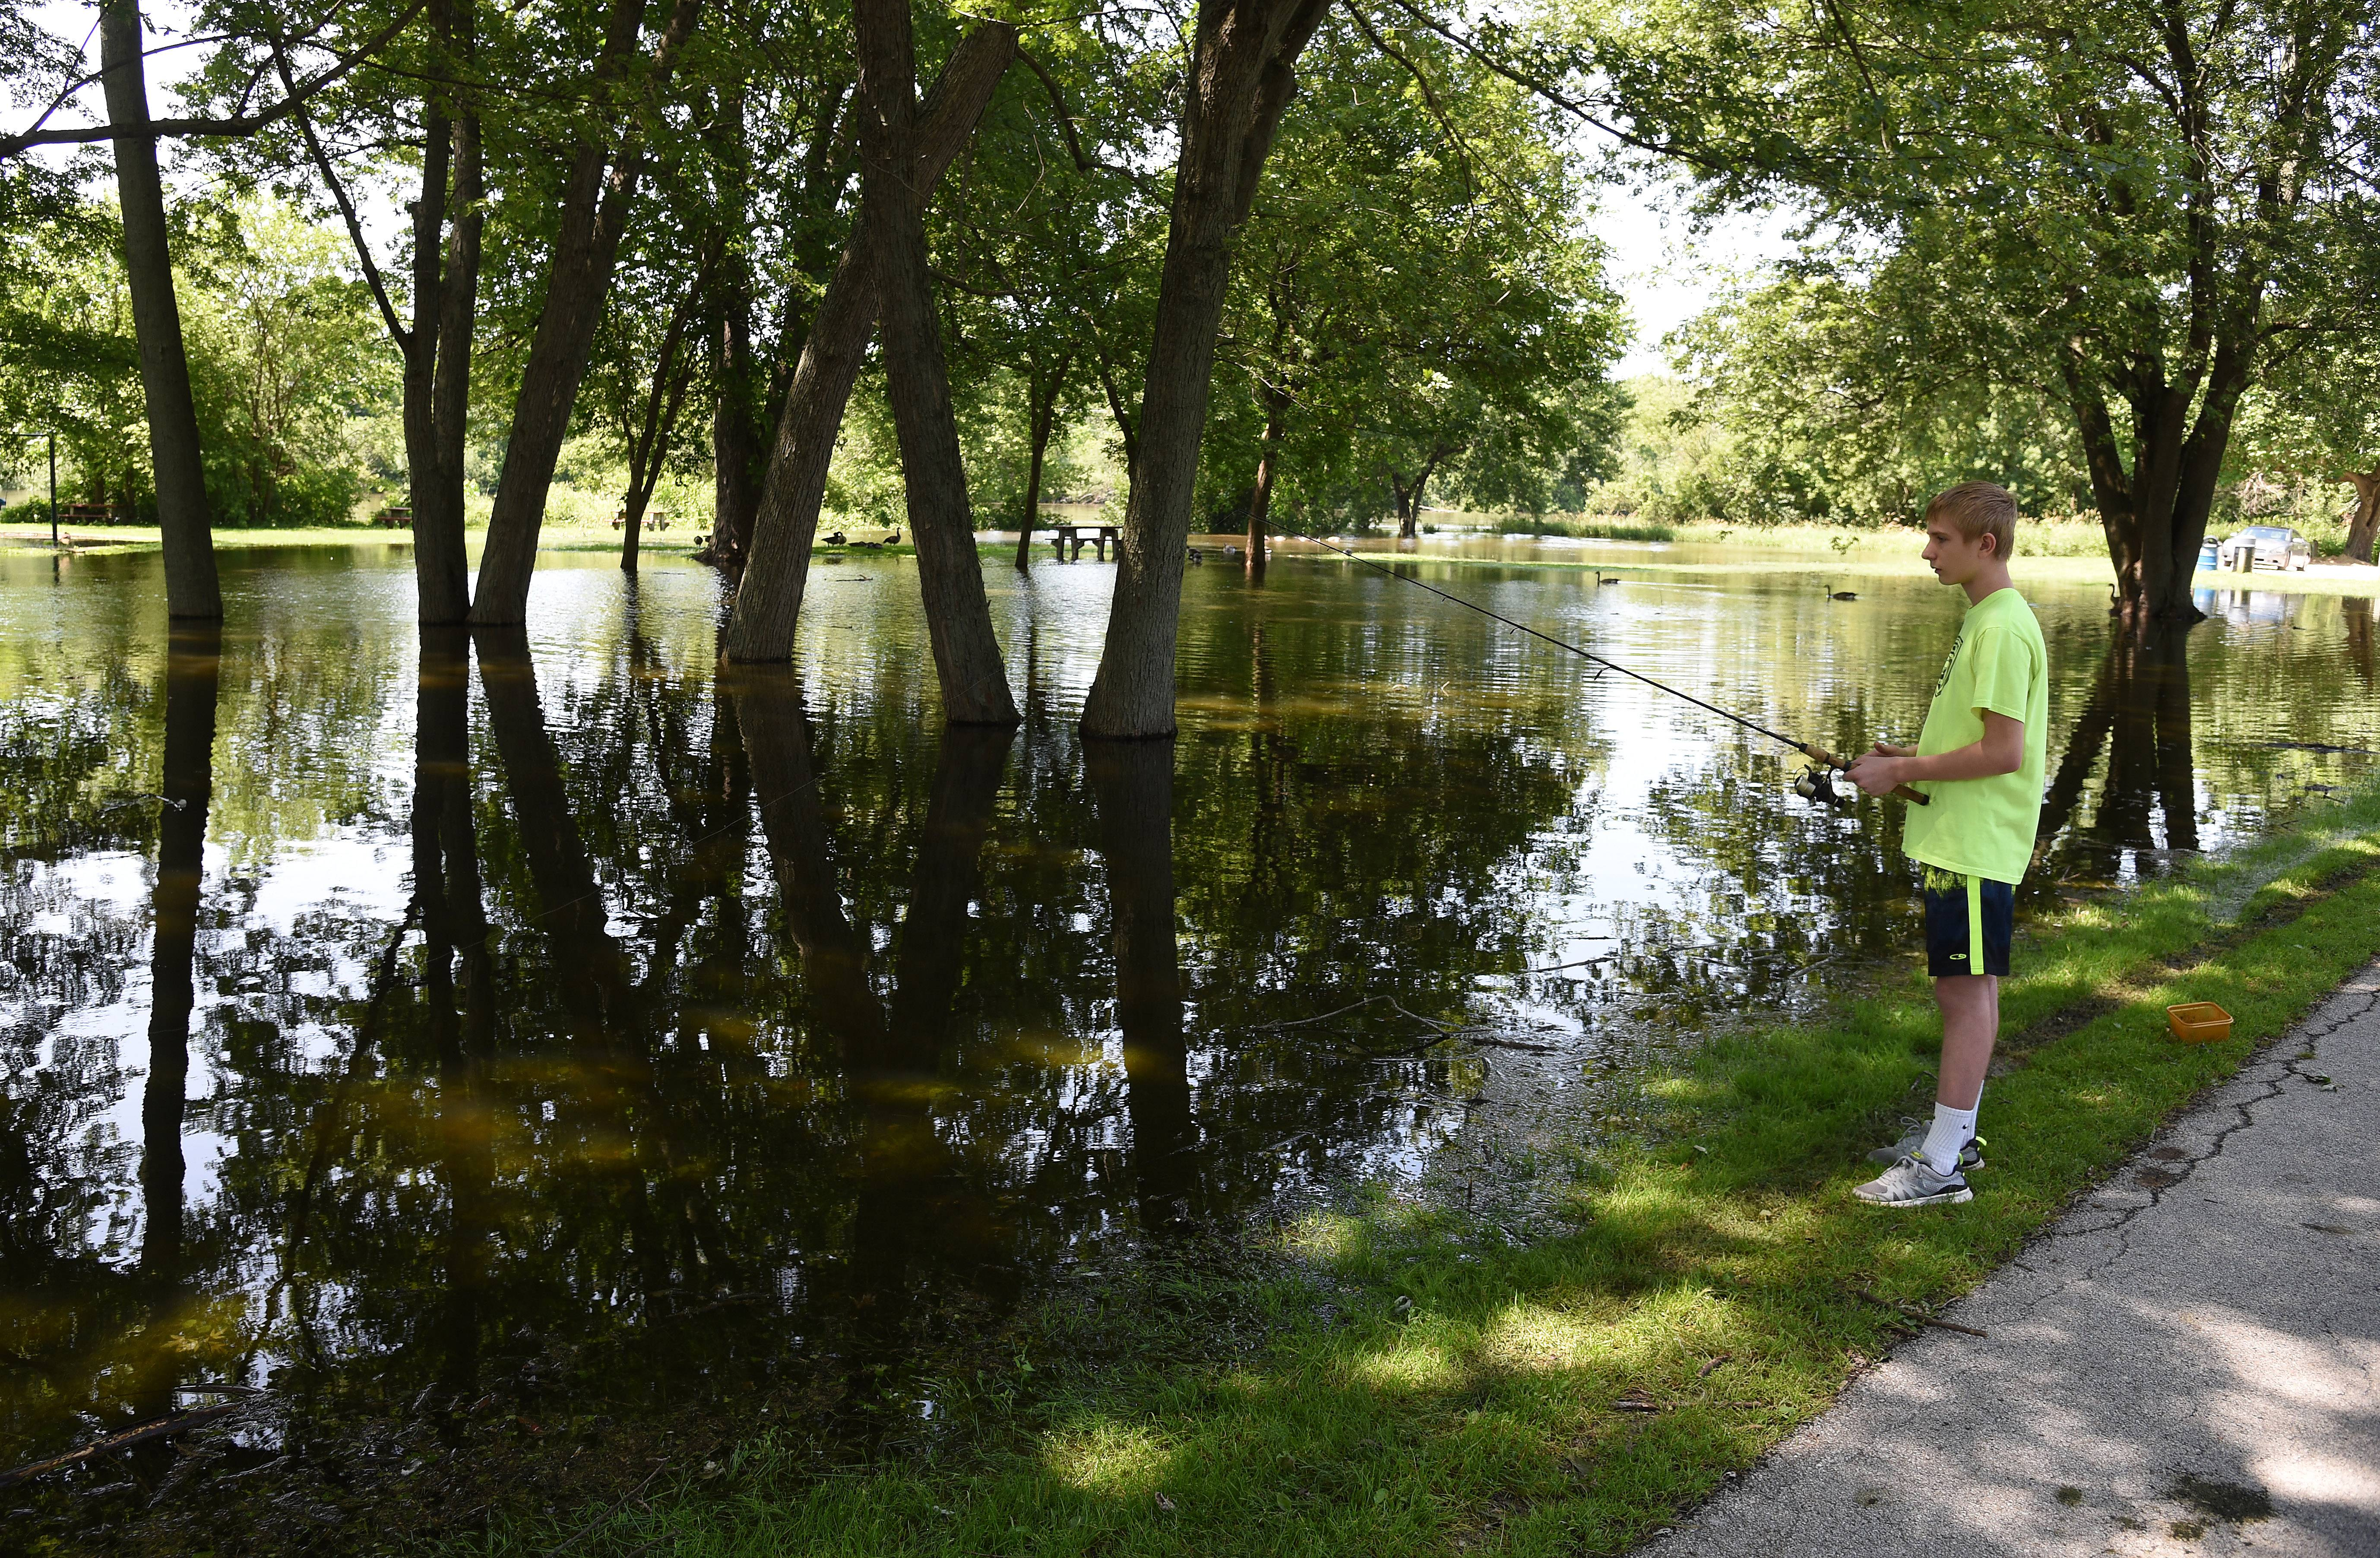 Austin Settipani, 13, takes advantage of flooding at Taly Park in St. Charles to do some fishing about 100 yards away from the usual Fox River bank.